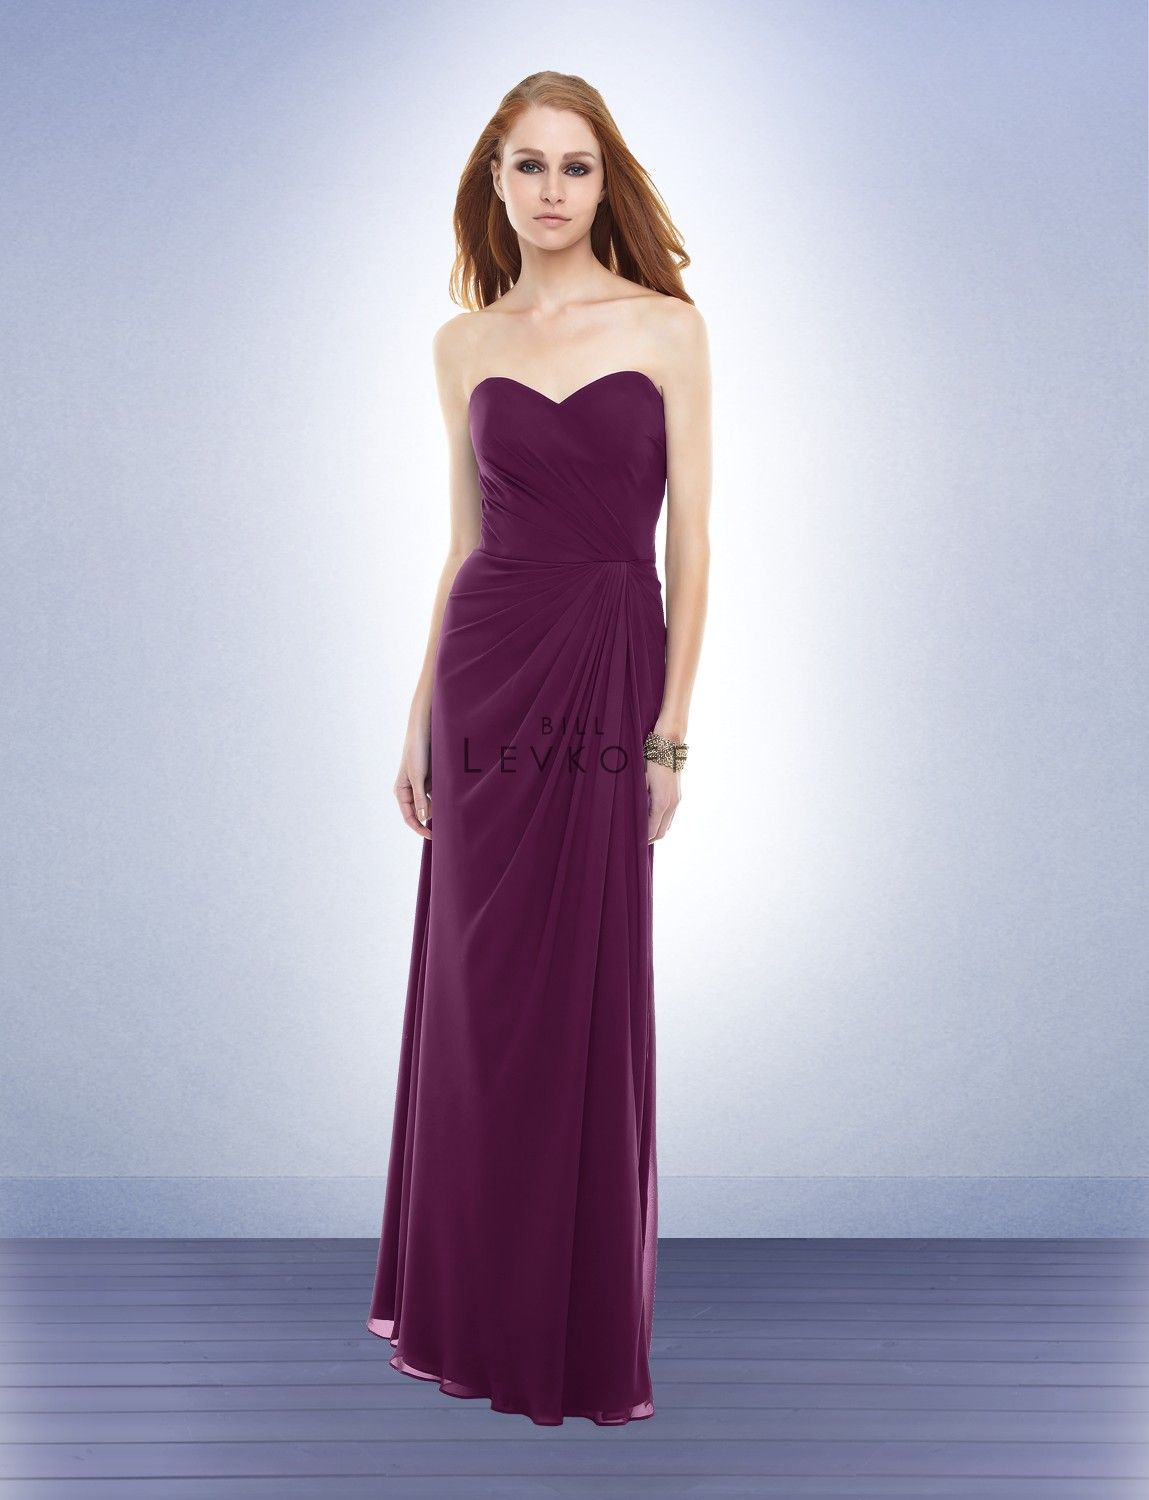 Come in and see at Celebrations of the Heart! Bridesmaid Dress Style 159 - Bridesmaid Dresses by Bill Levkoff